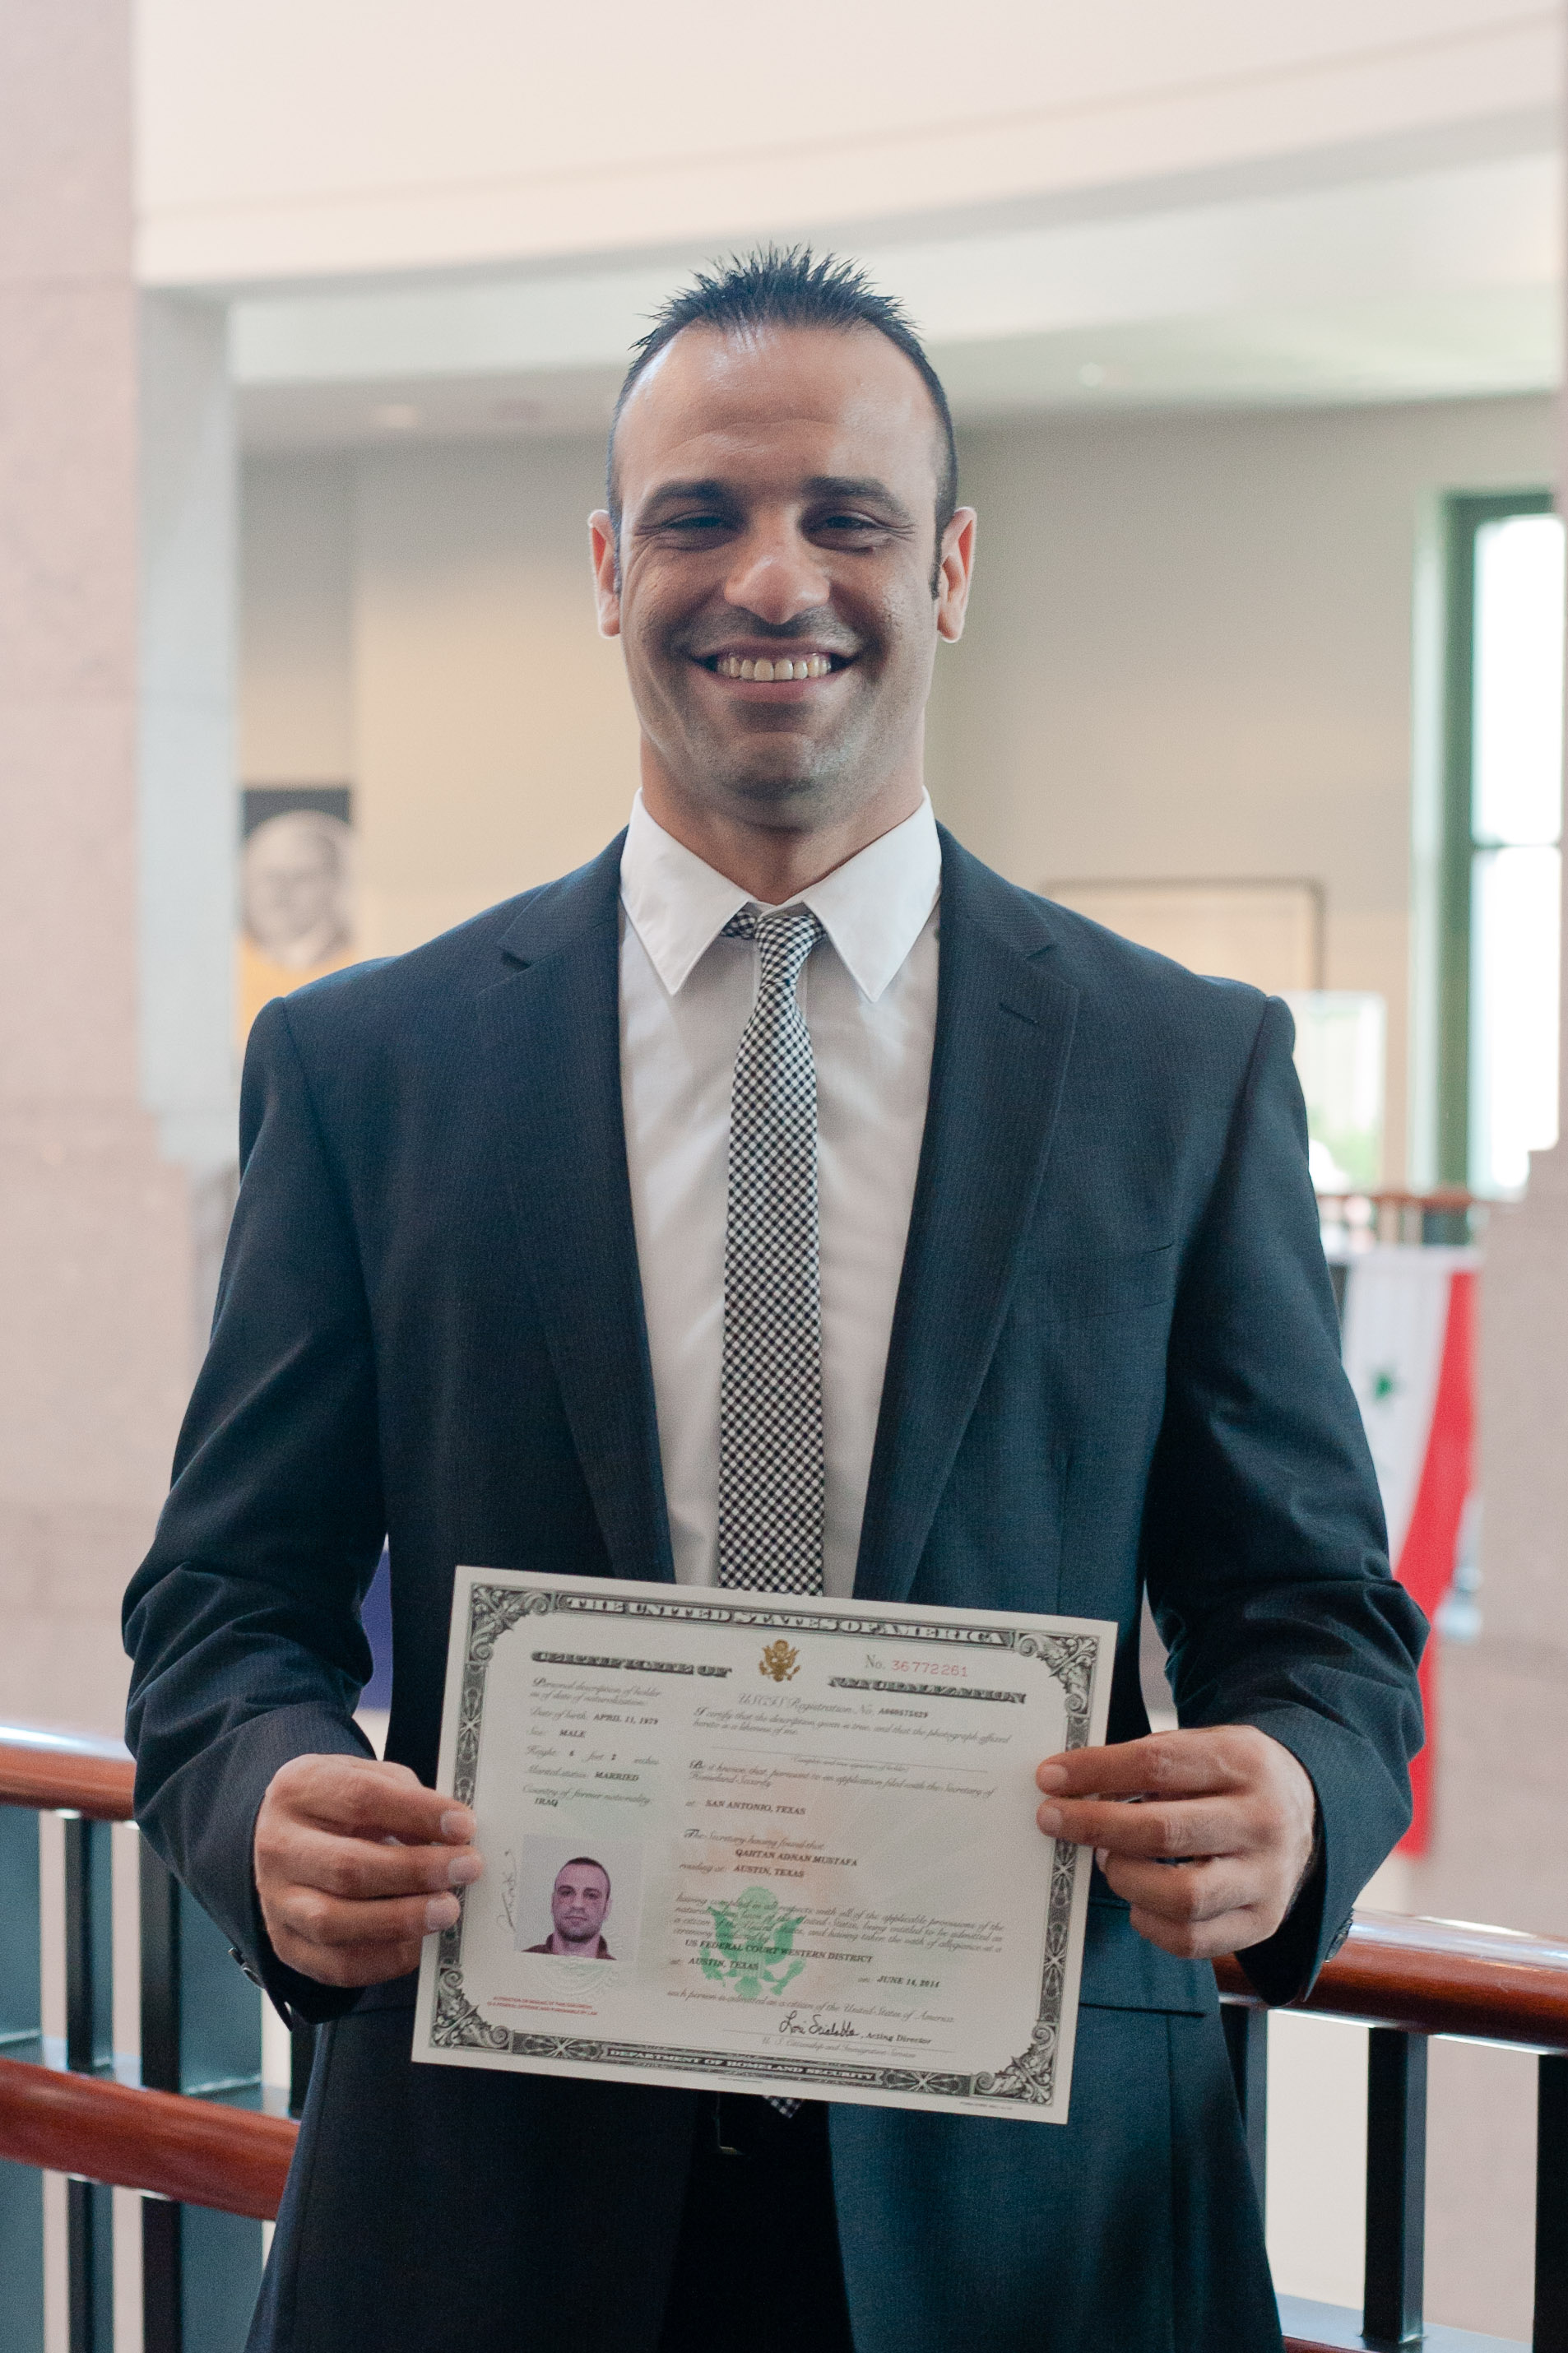 Qahtan swore his oath of citizenship in 2014